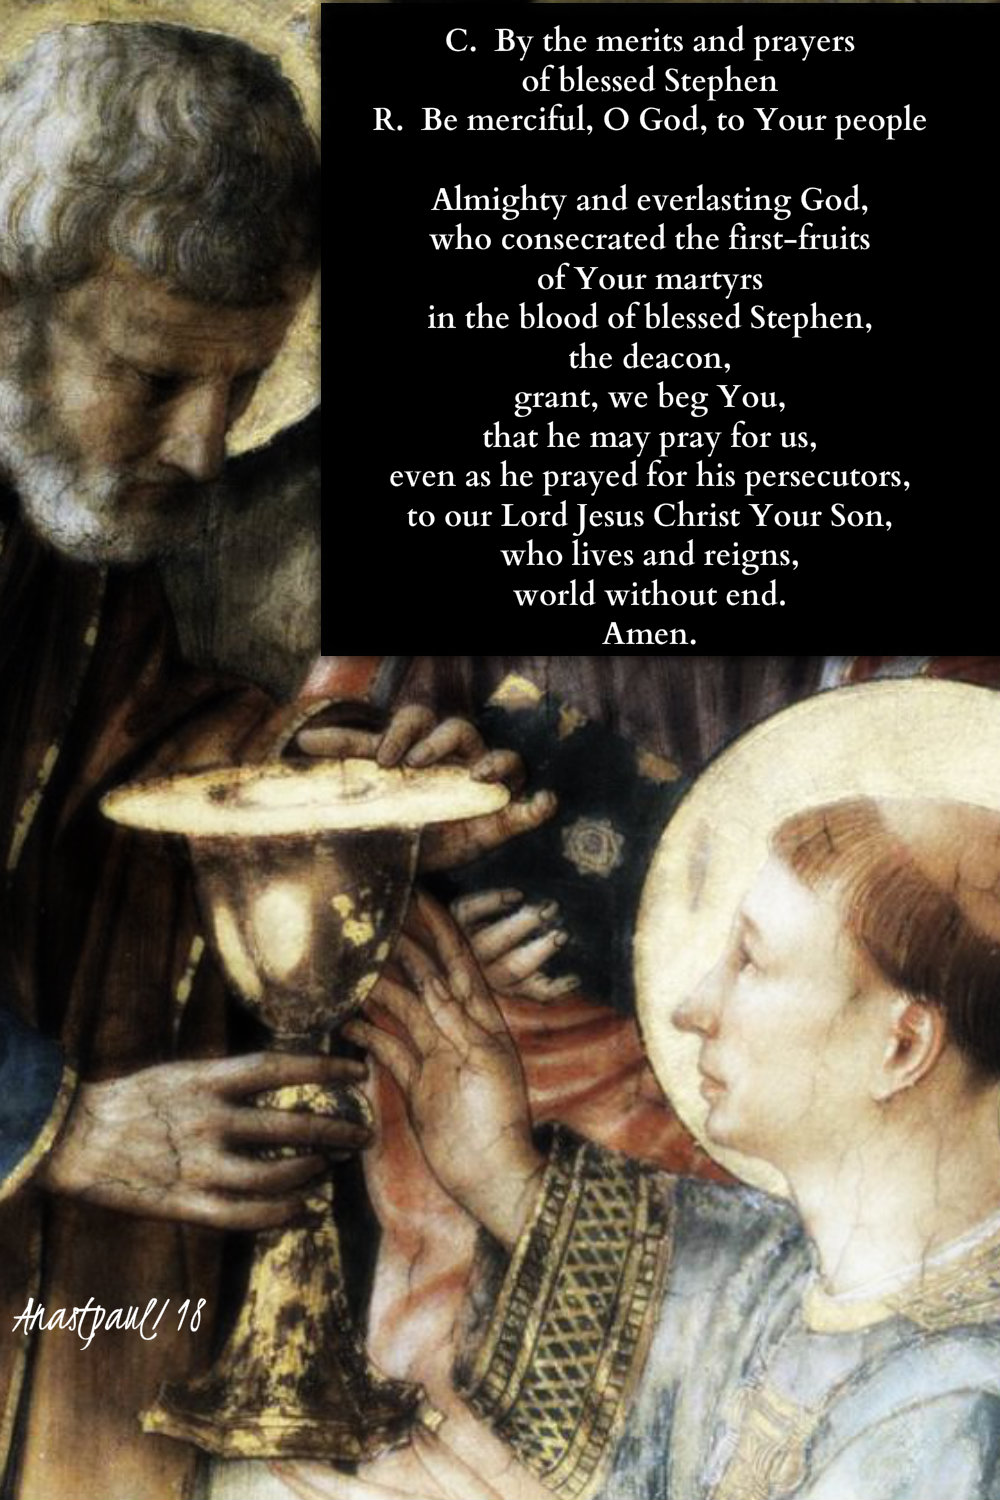 Prayer for the feast of st stephen 26 dec 2018